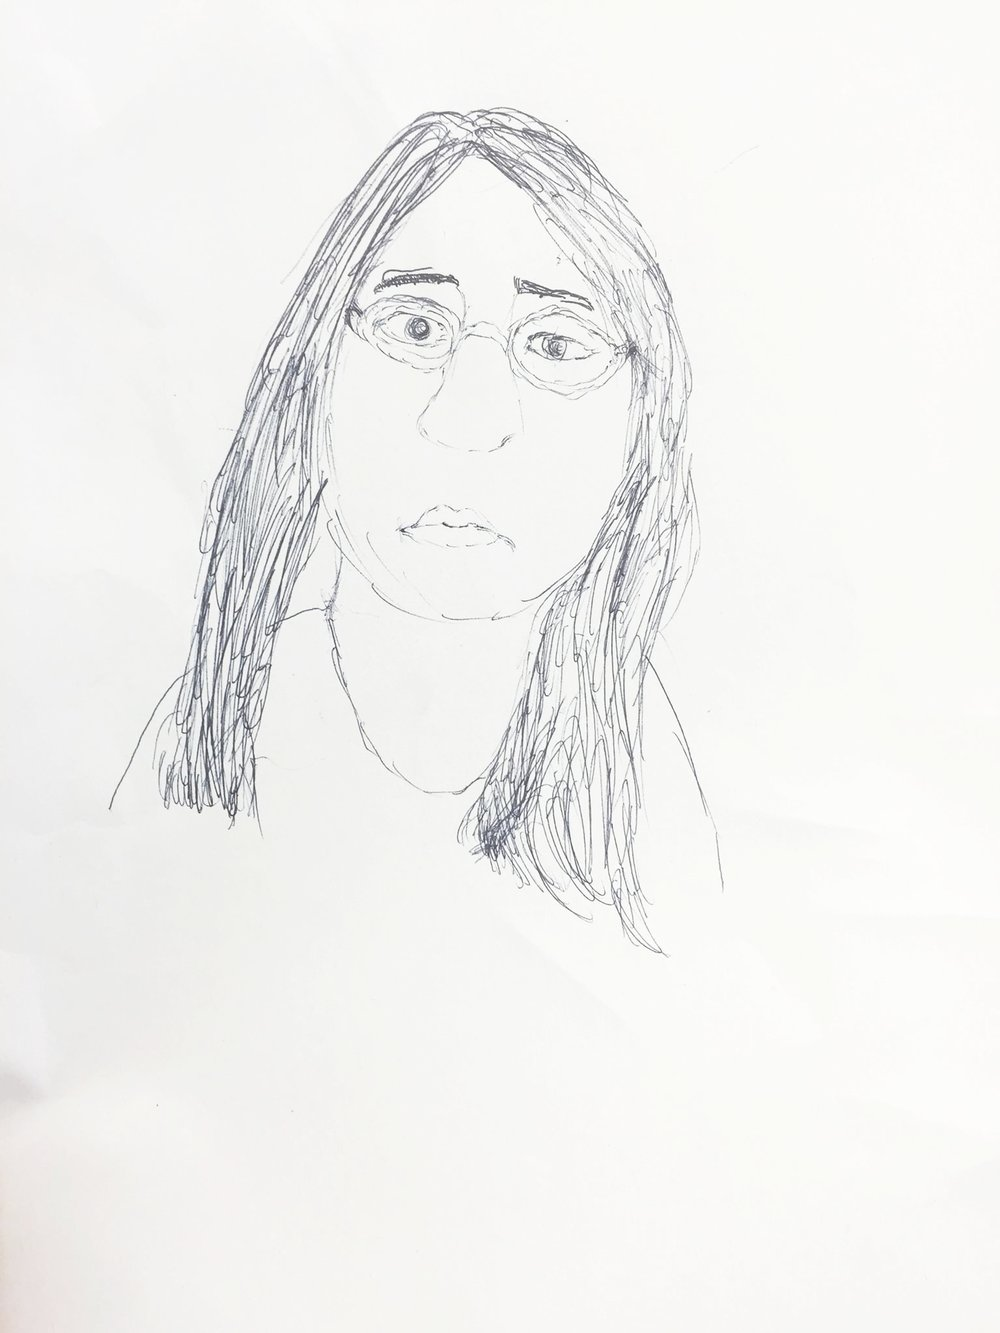 a drawing of me by isaac, a 7th grade student i once taught.